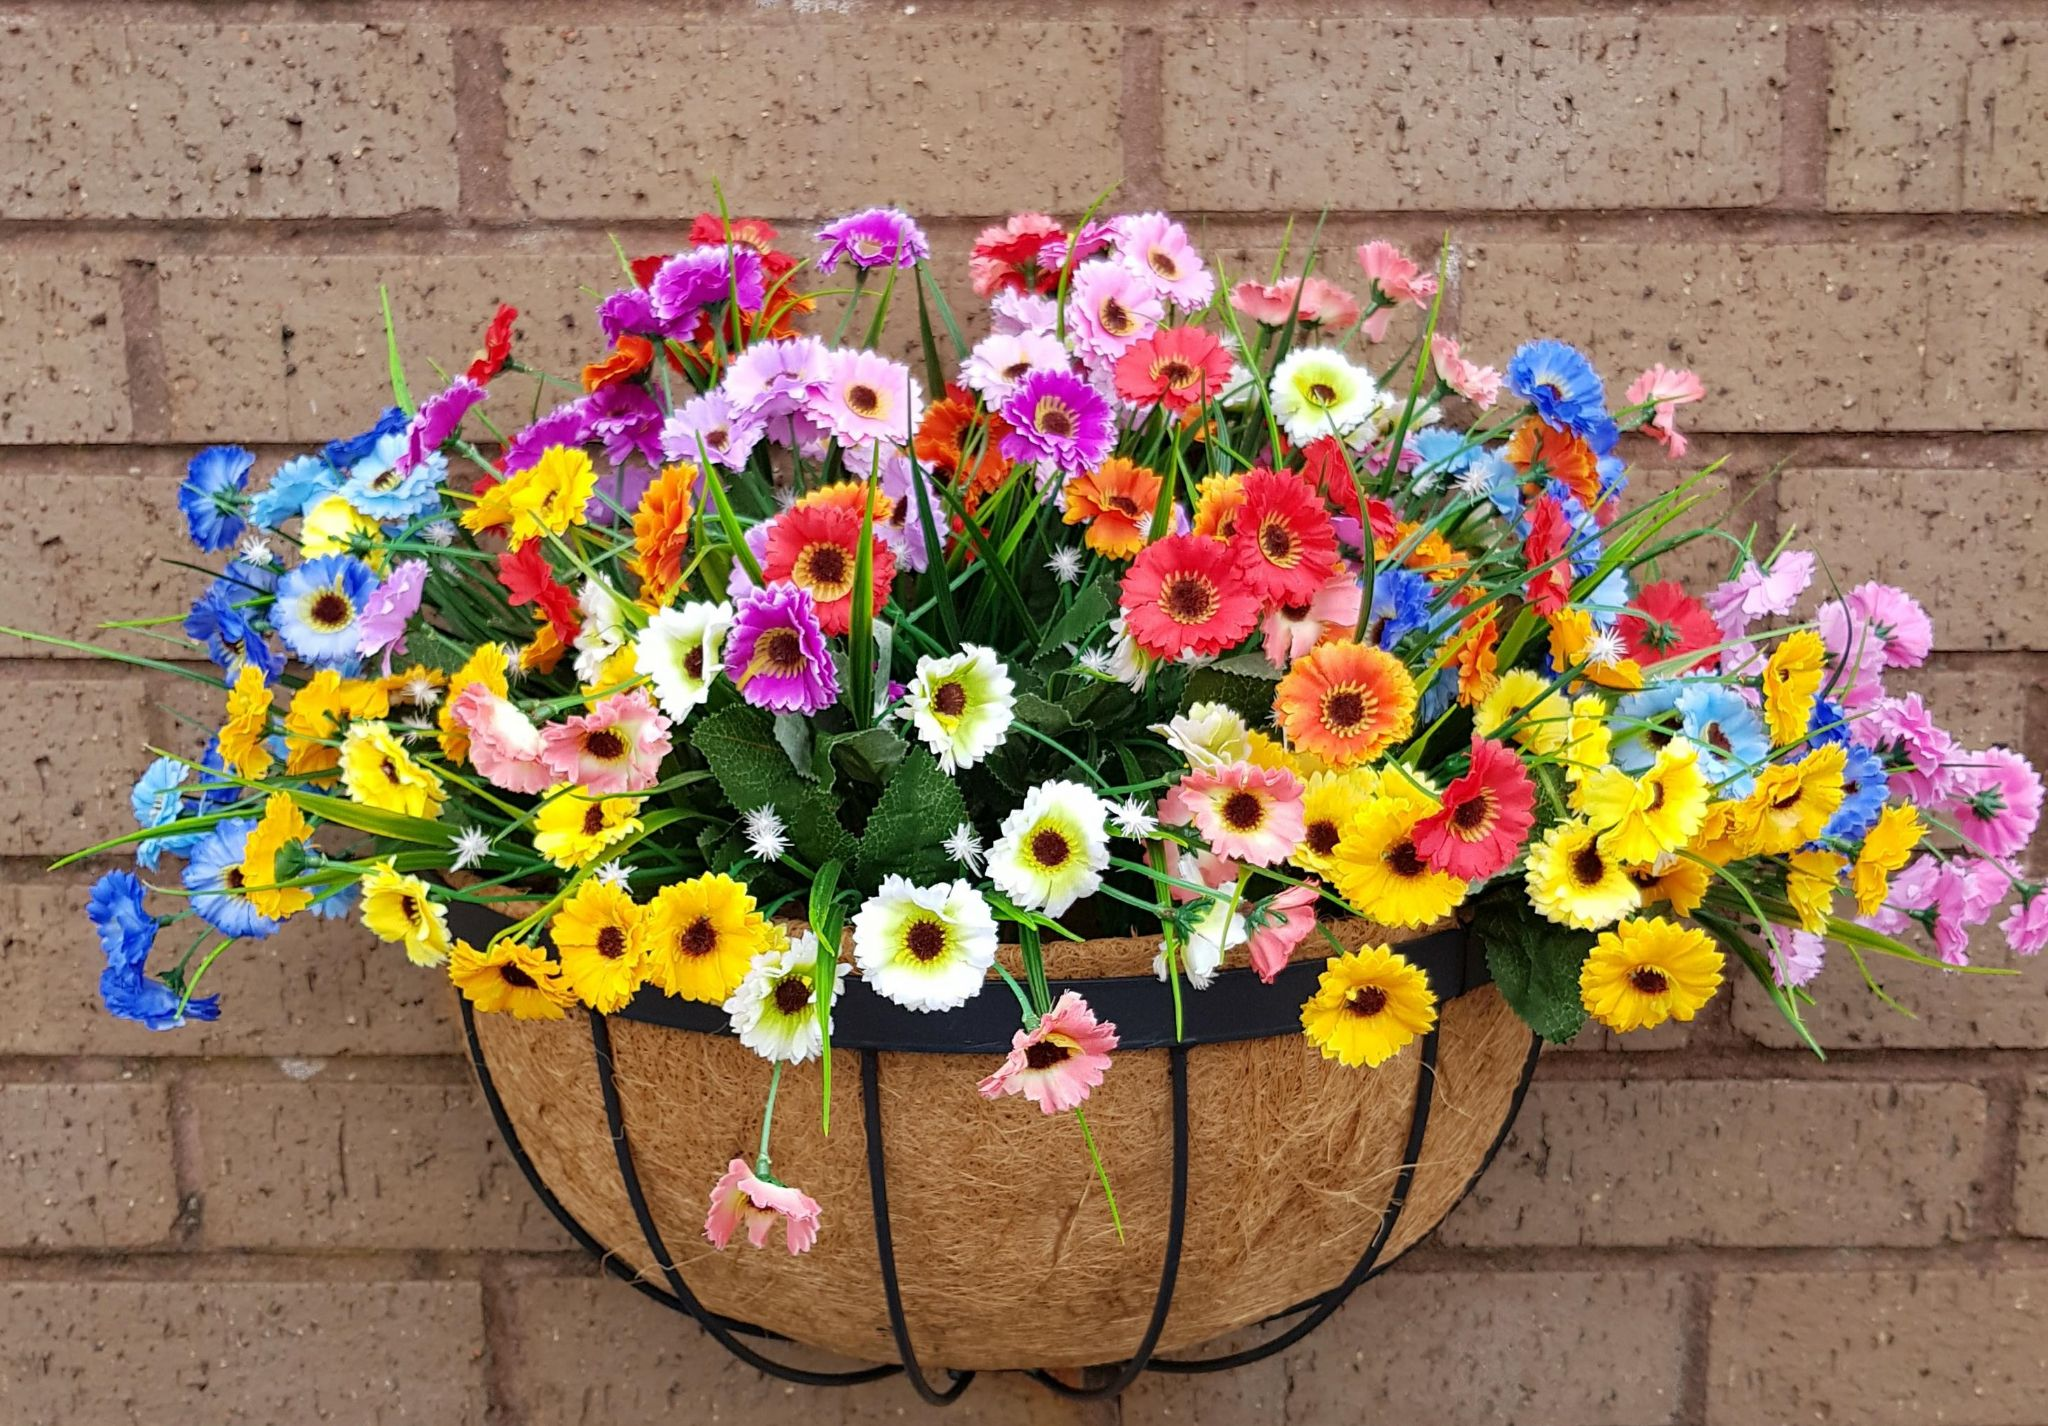 Artificial Flower Market by Manufacturers, Countries, Type and Application, Forecast to 2024 offered by Planet Market Reports